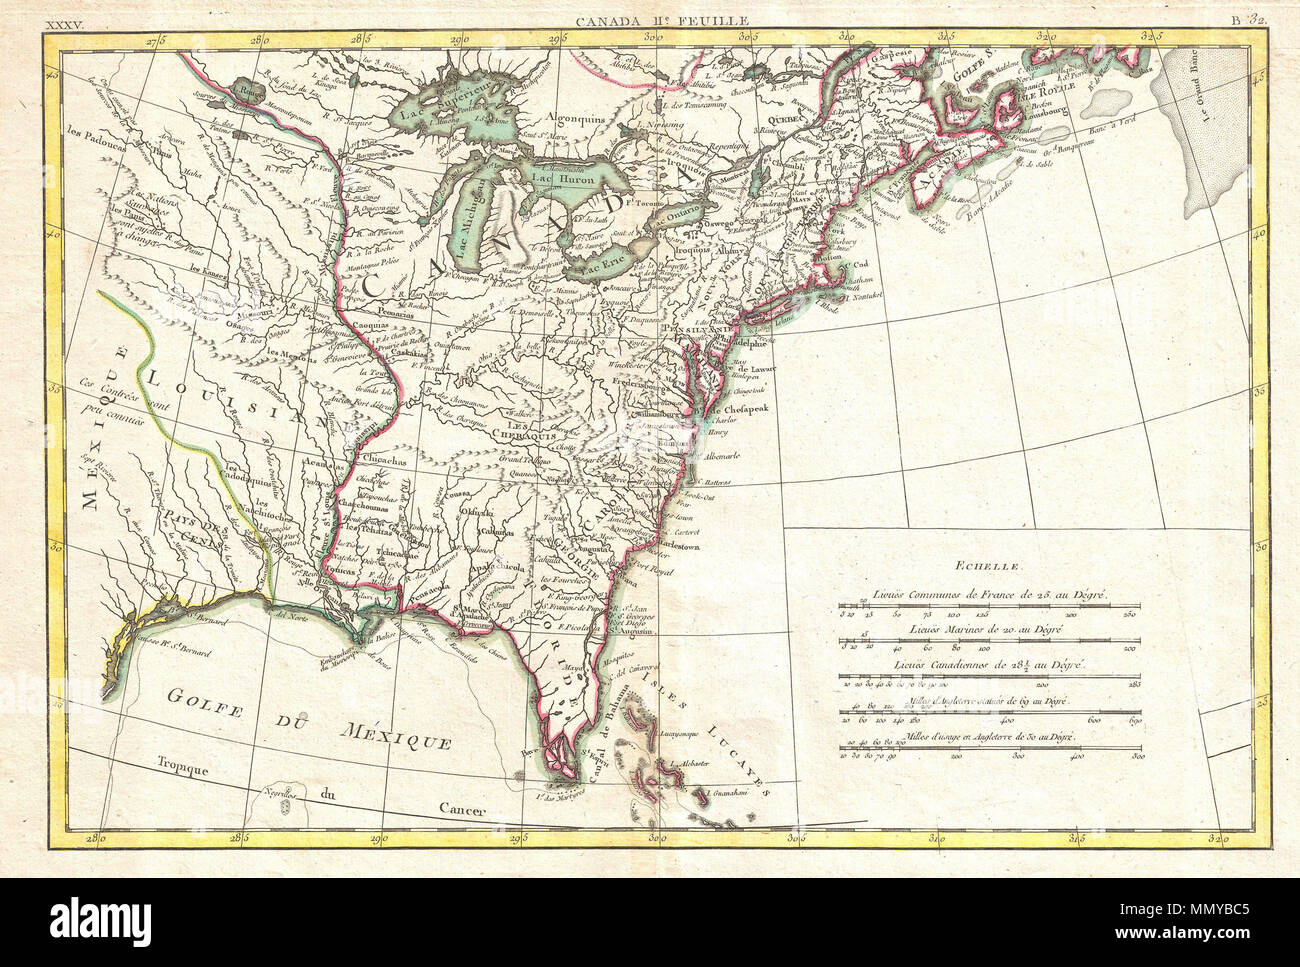 North America Map Mississippi River.English Printed In 1776 On The Cusp Of The American Revolutionary